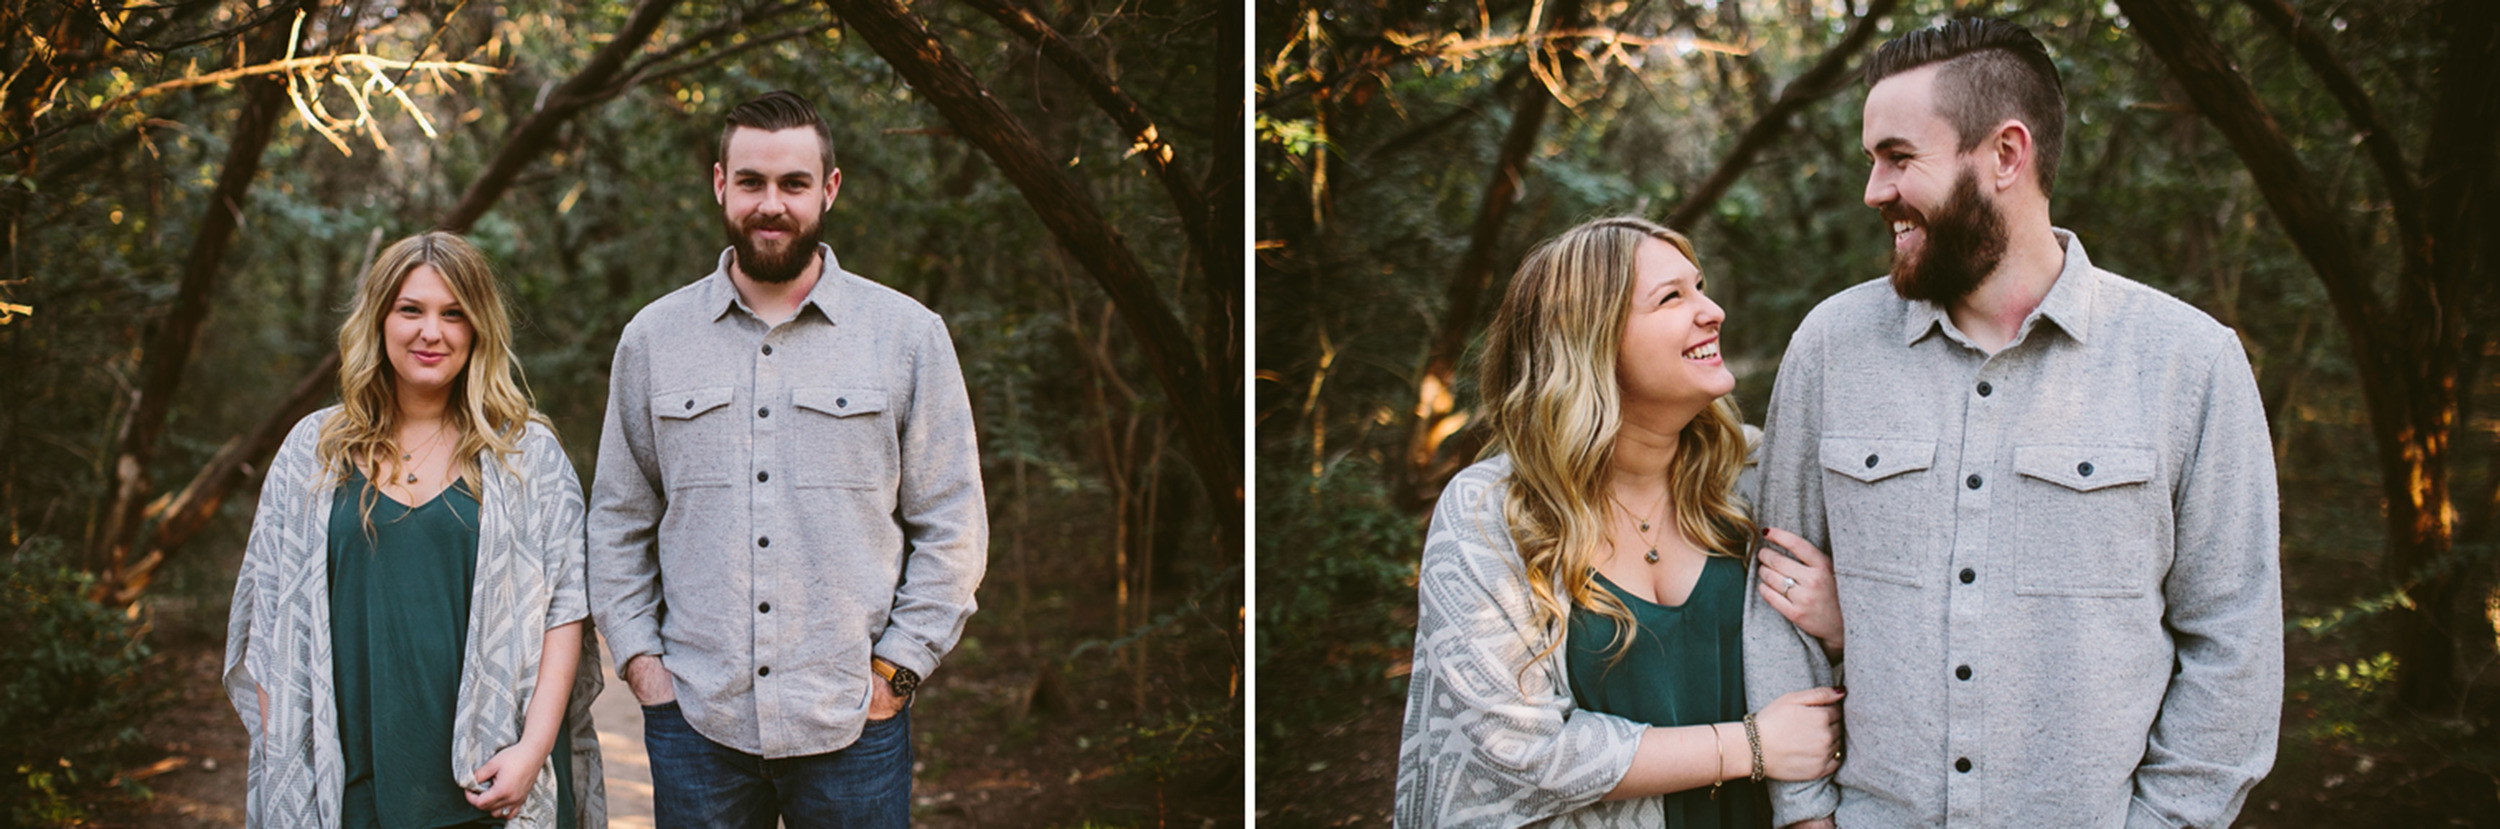 AustinWeddingPhotographer-Engagement007.jpg